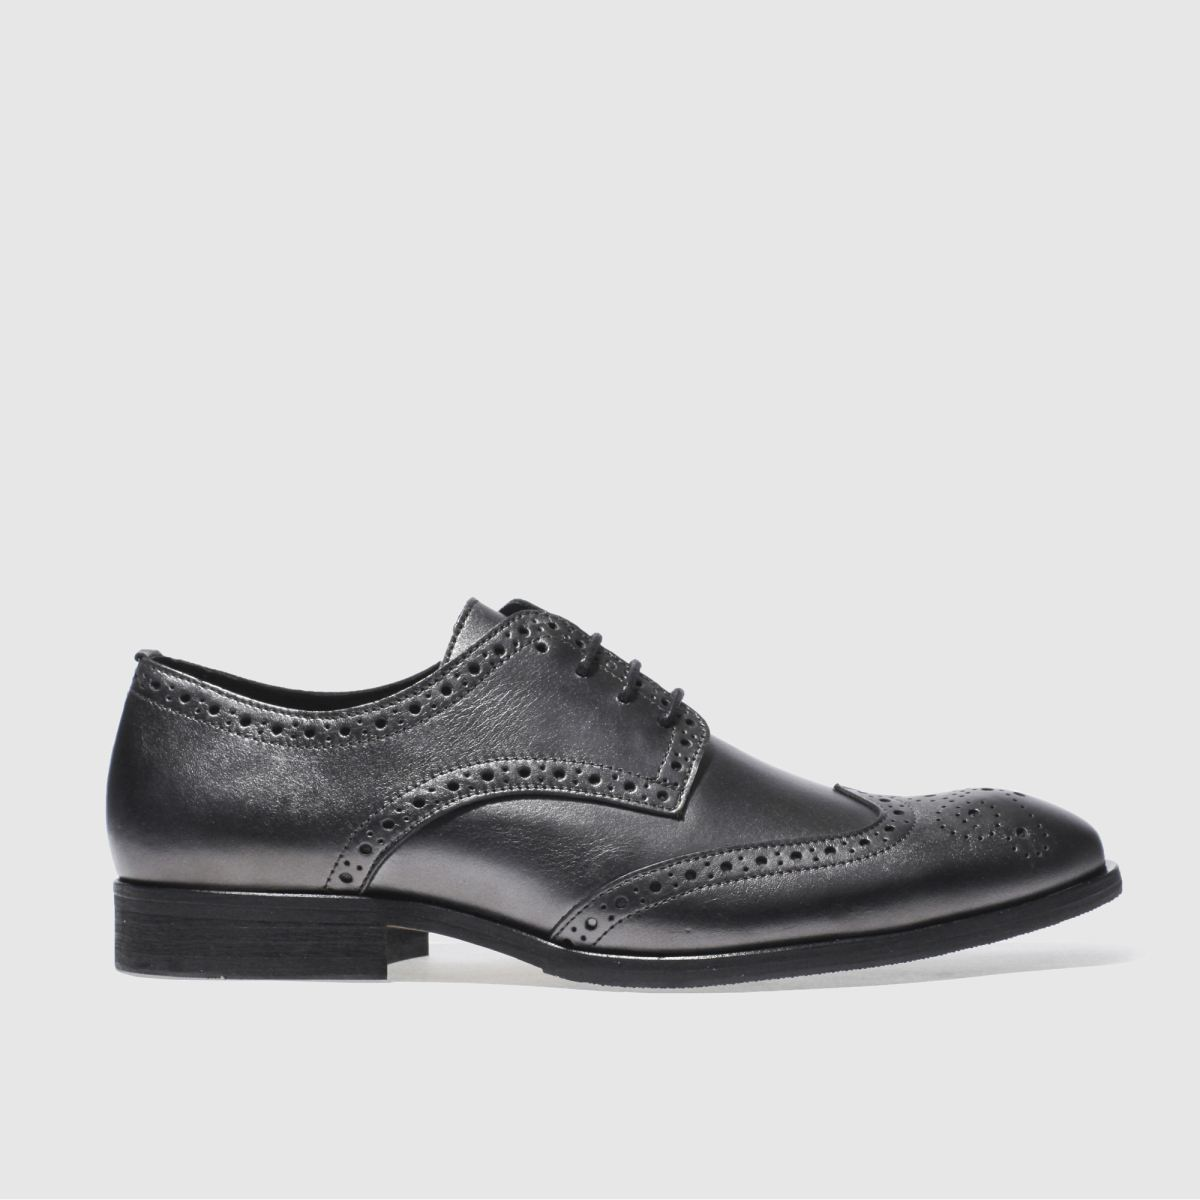 schuh pewter ramsay brogue shoes